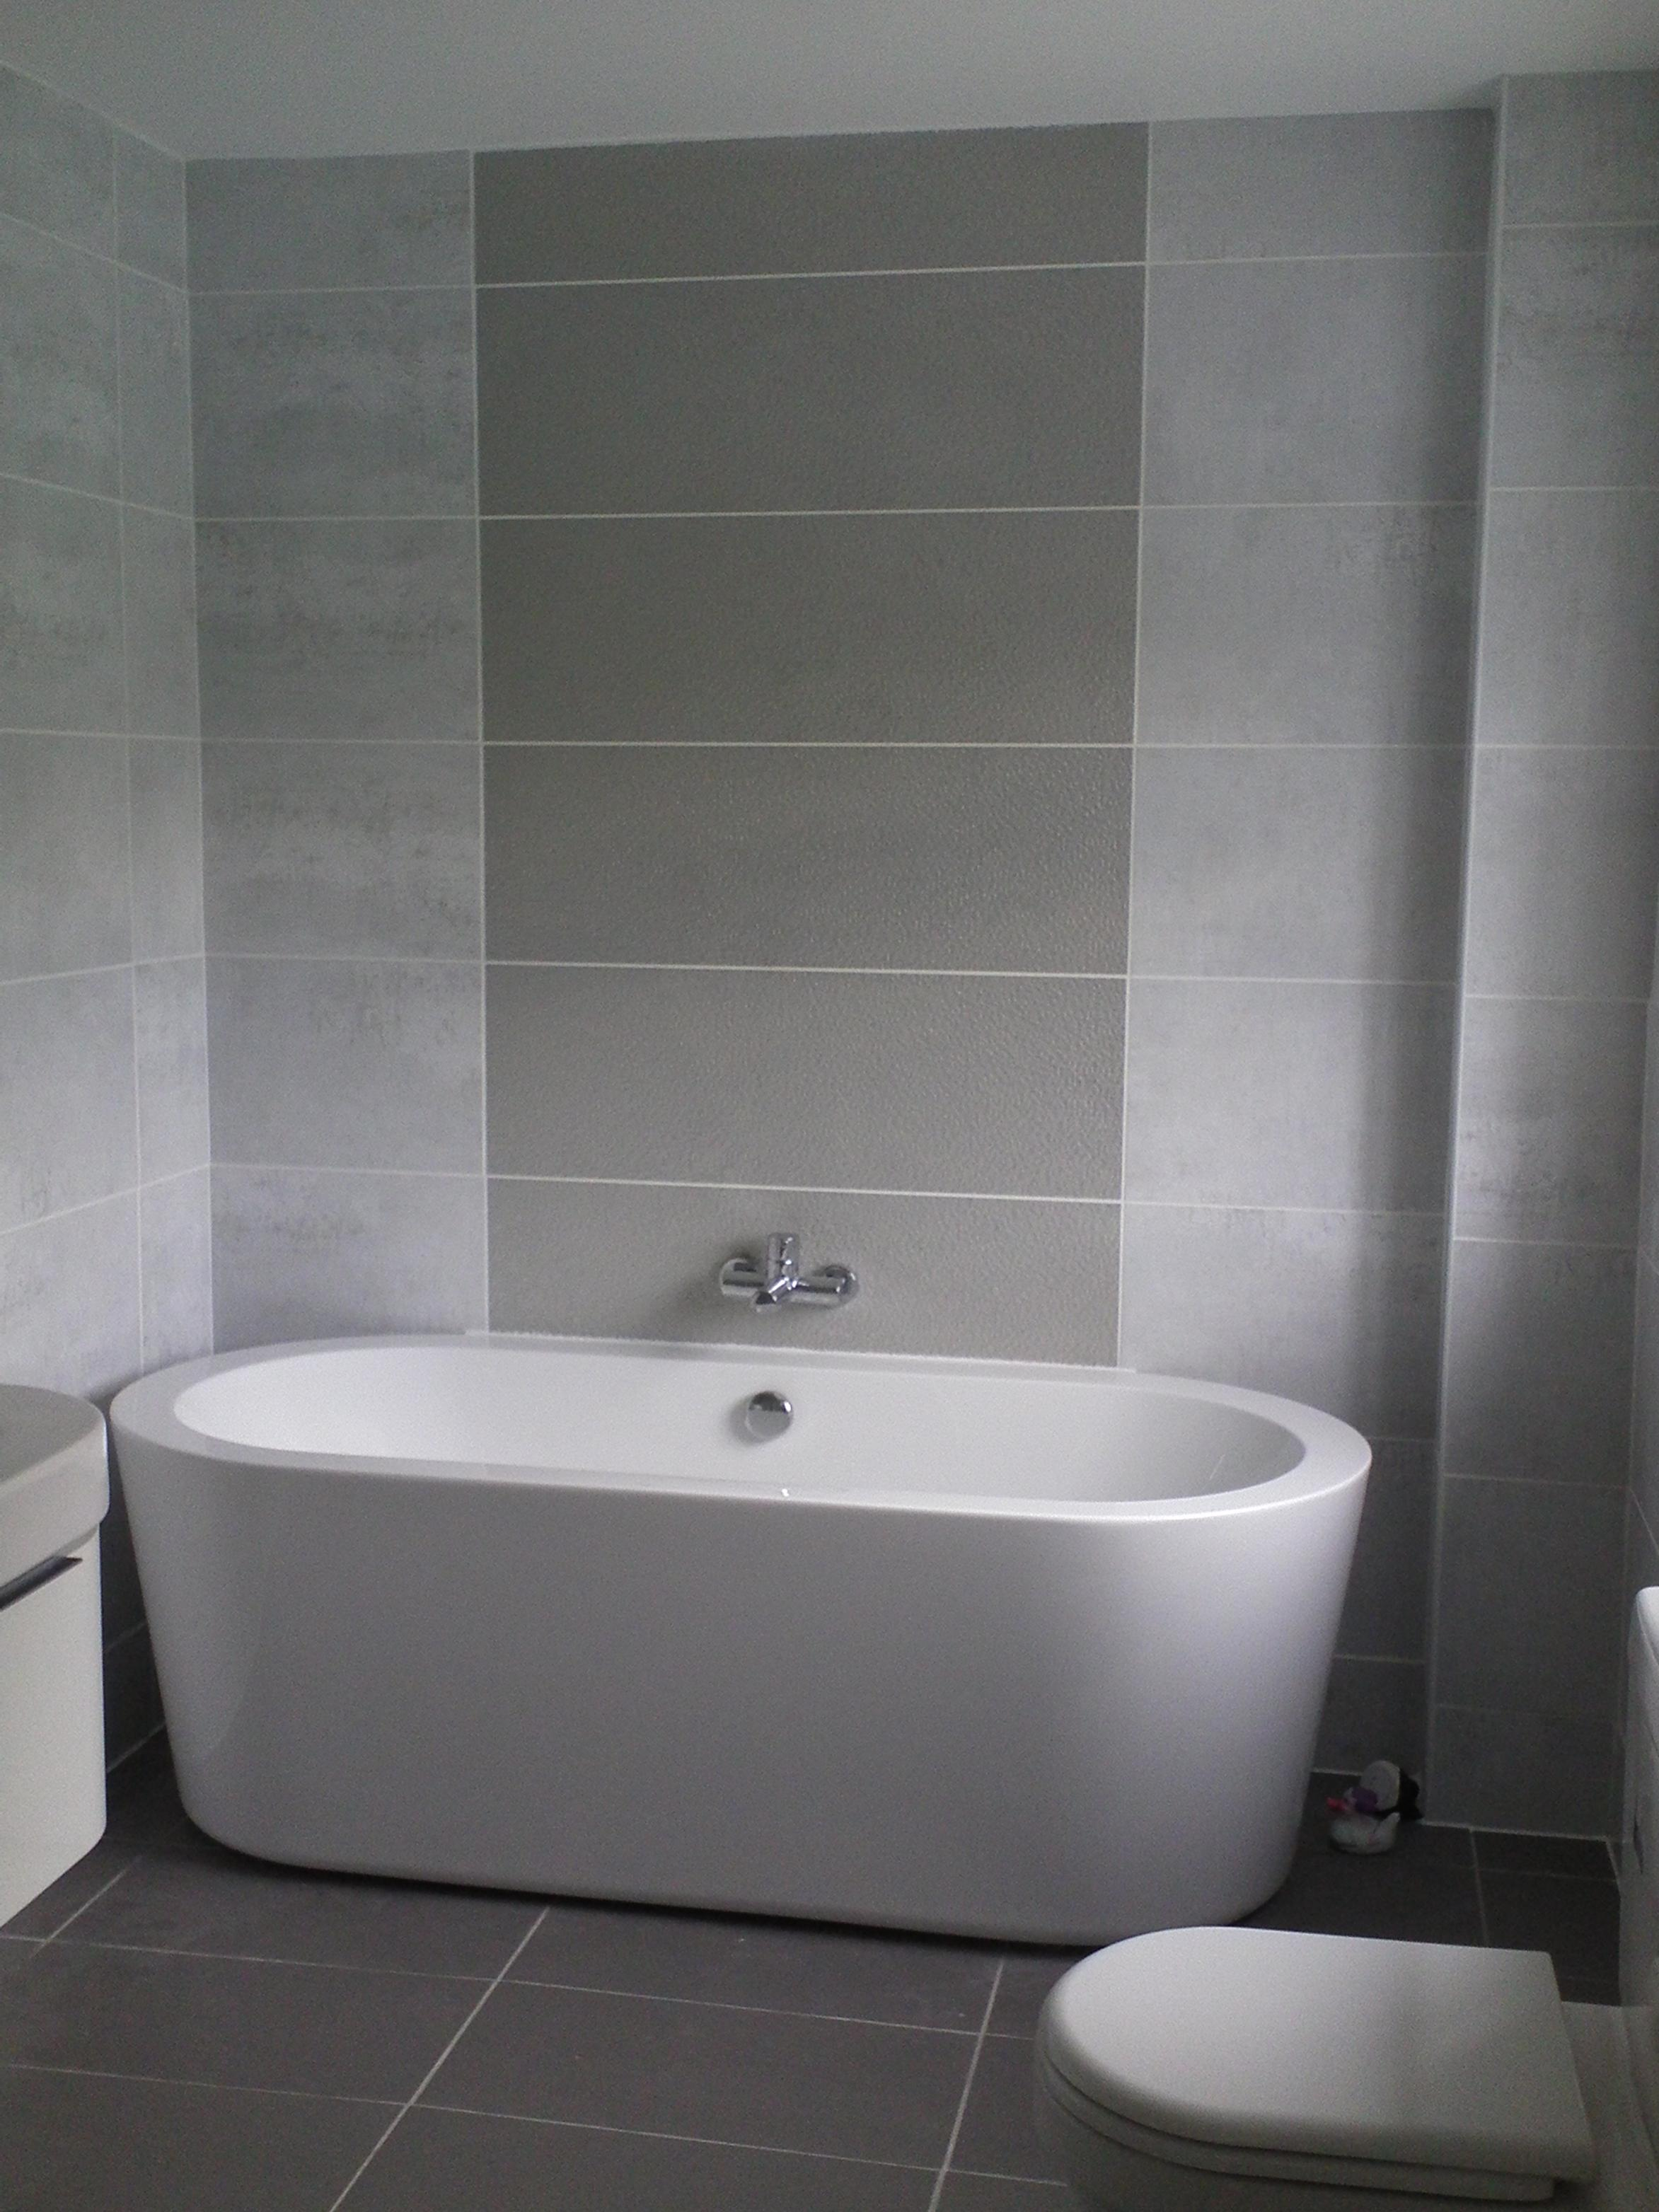 interior white grey tiles bathroom wall added by. 25 grey wall tiles for bathroom ideas and pictures